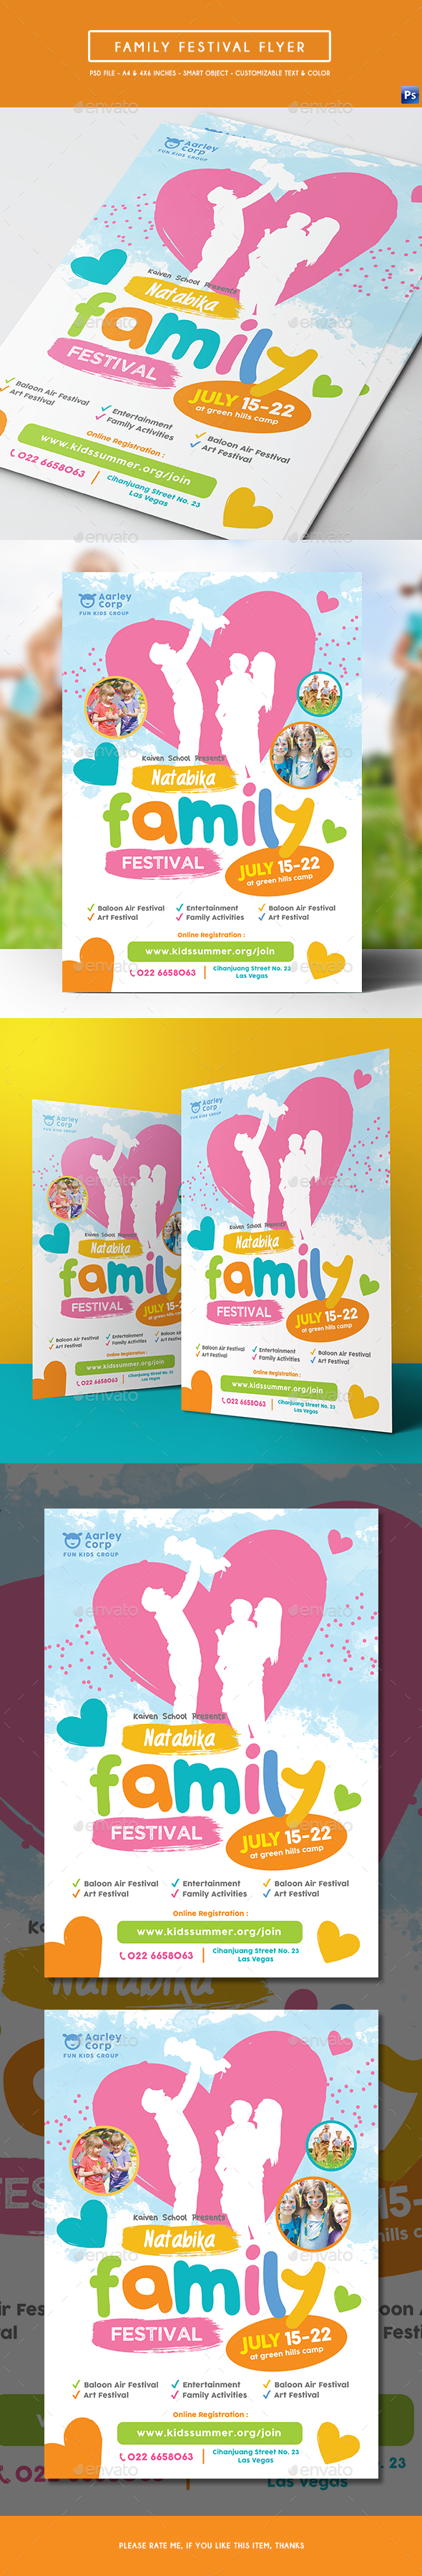 Family Festival Flyer - Events Flyers